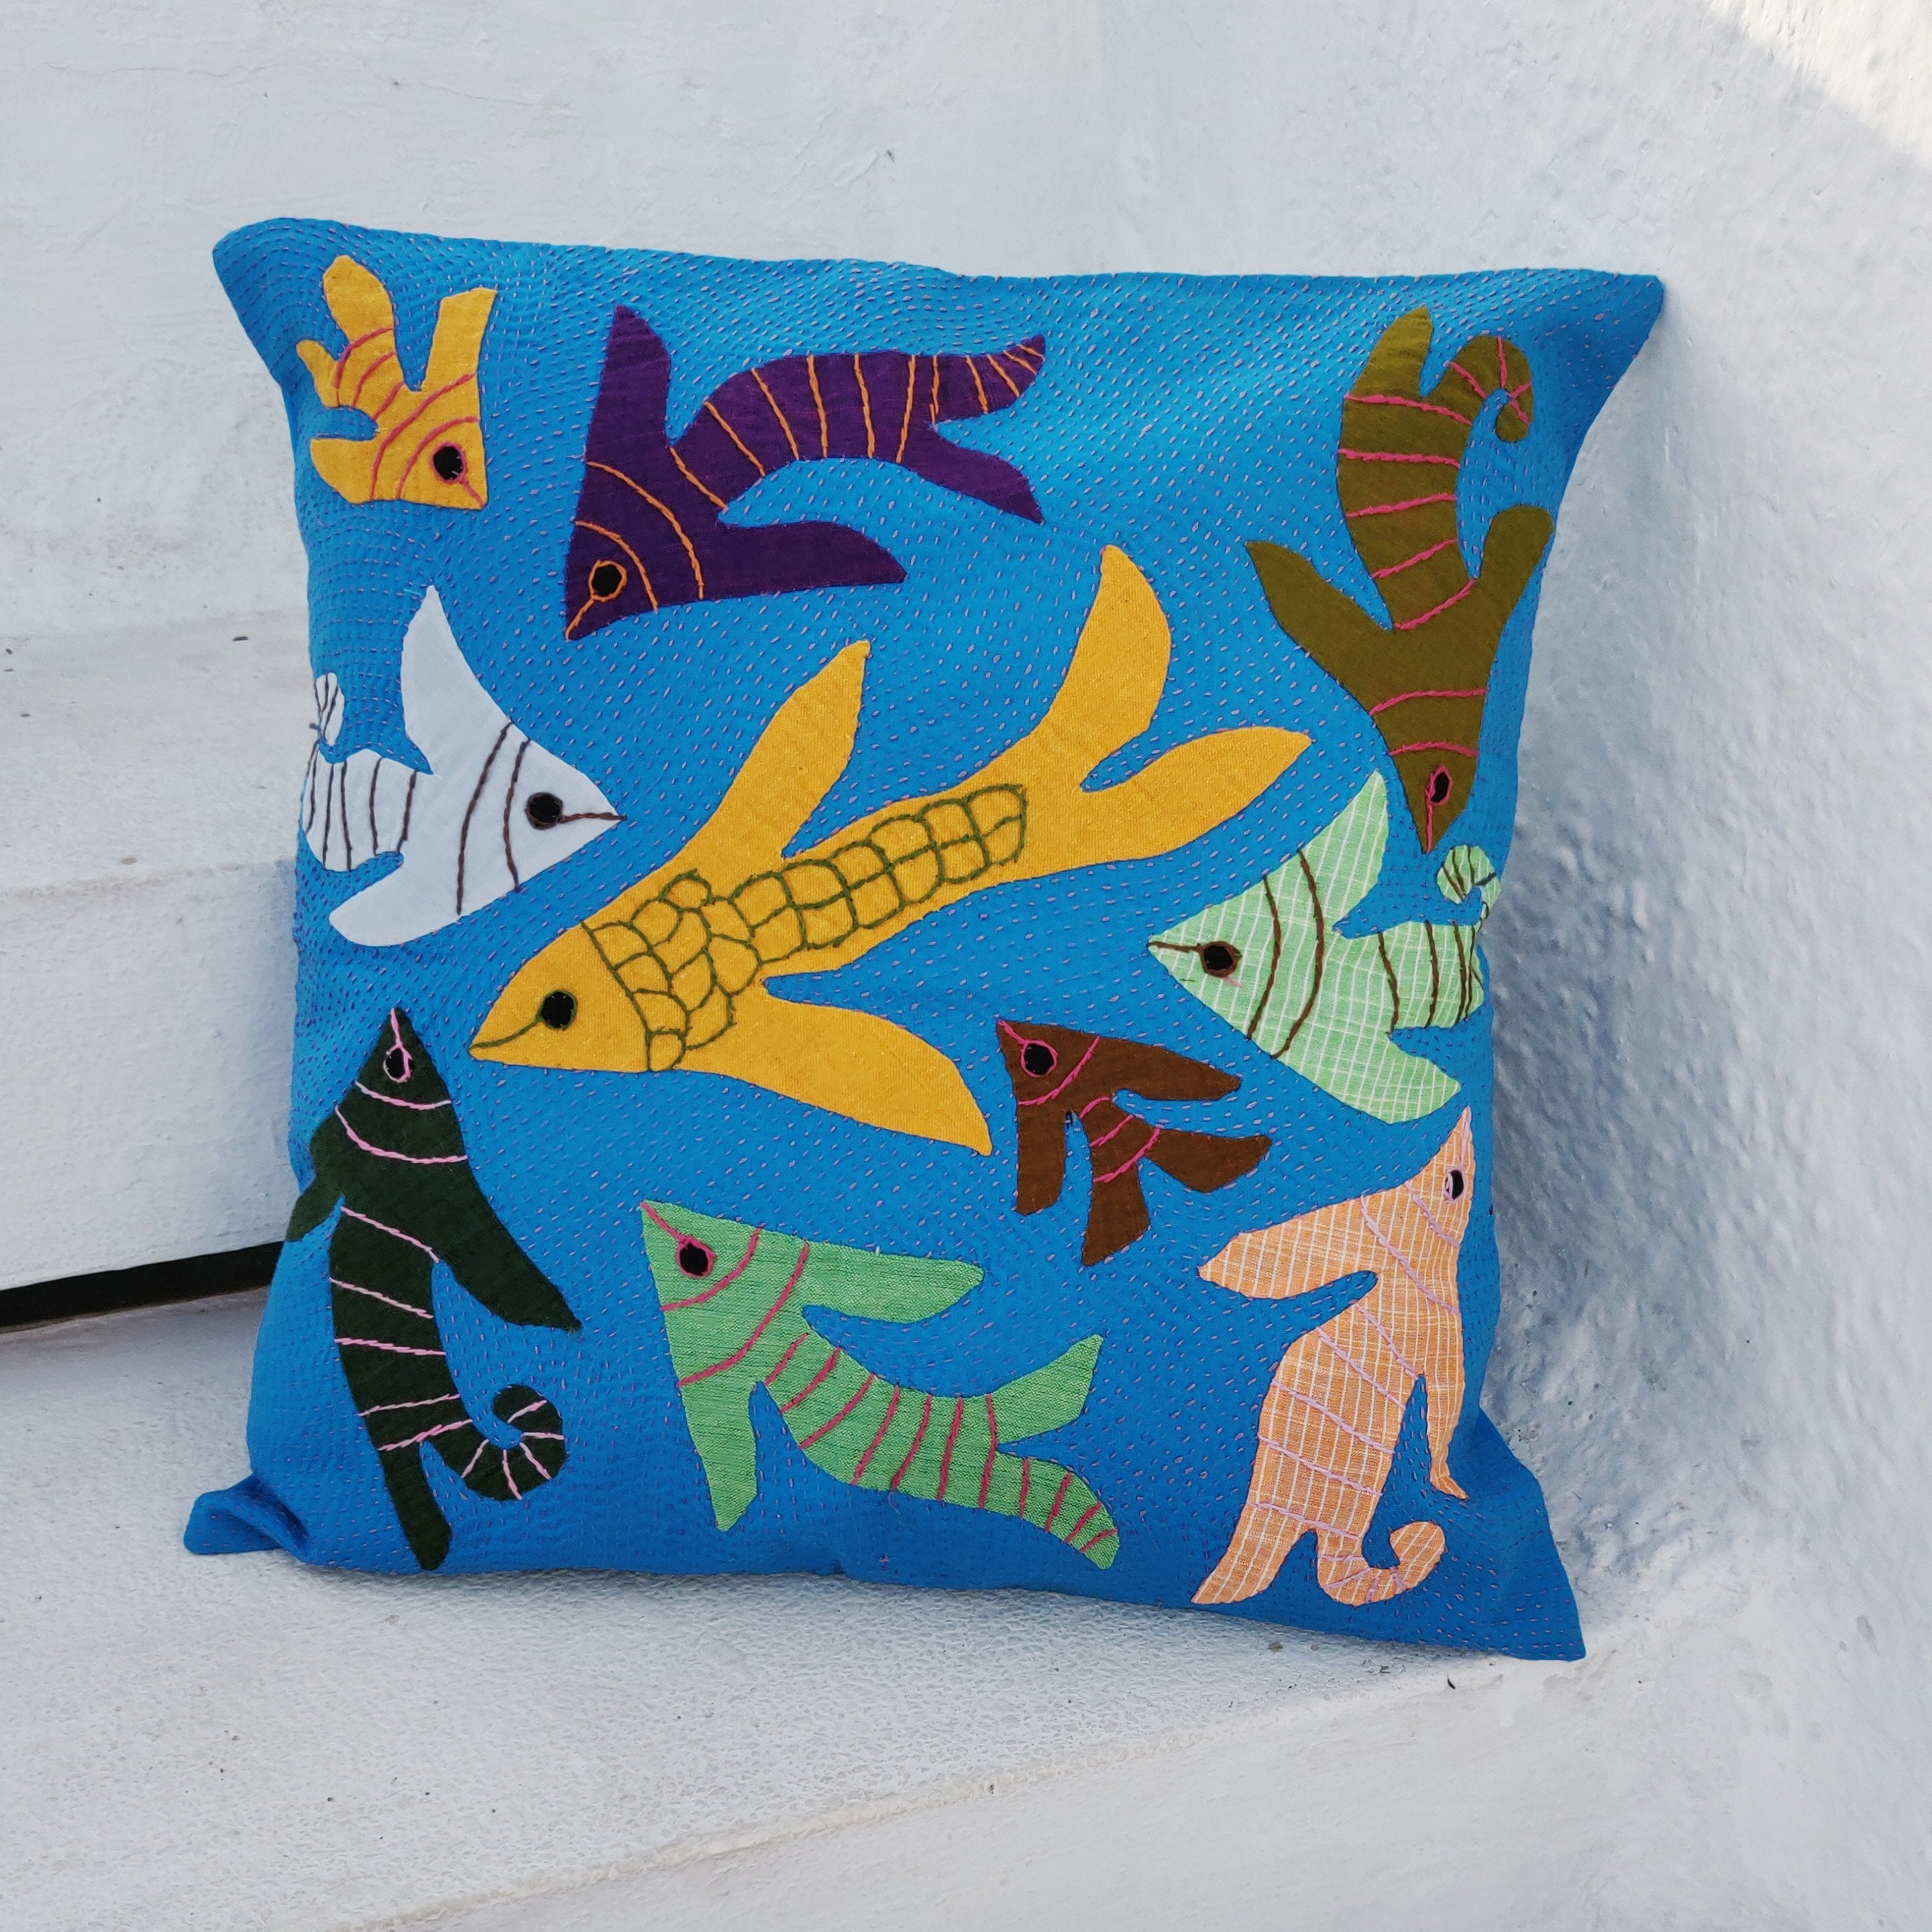 Applique work Cushion Cover - Fishes - Blue